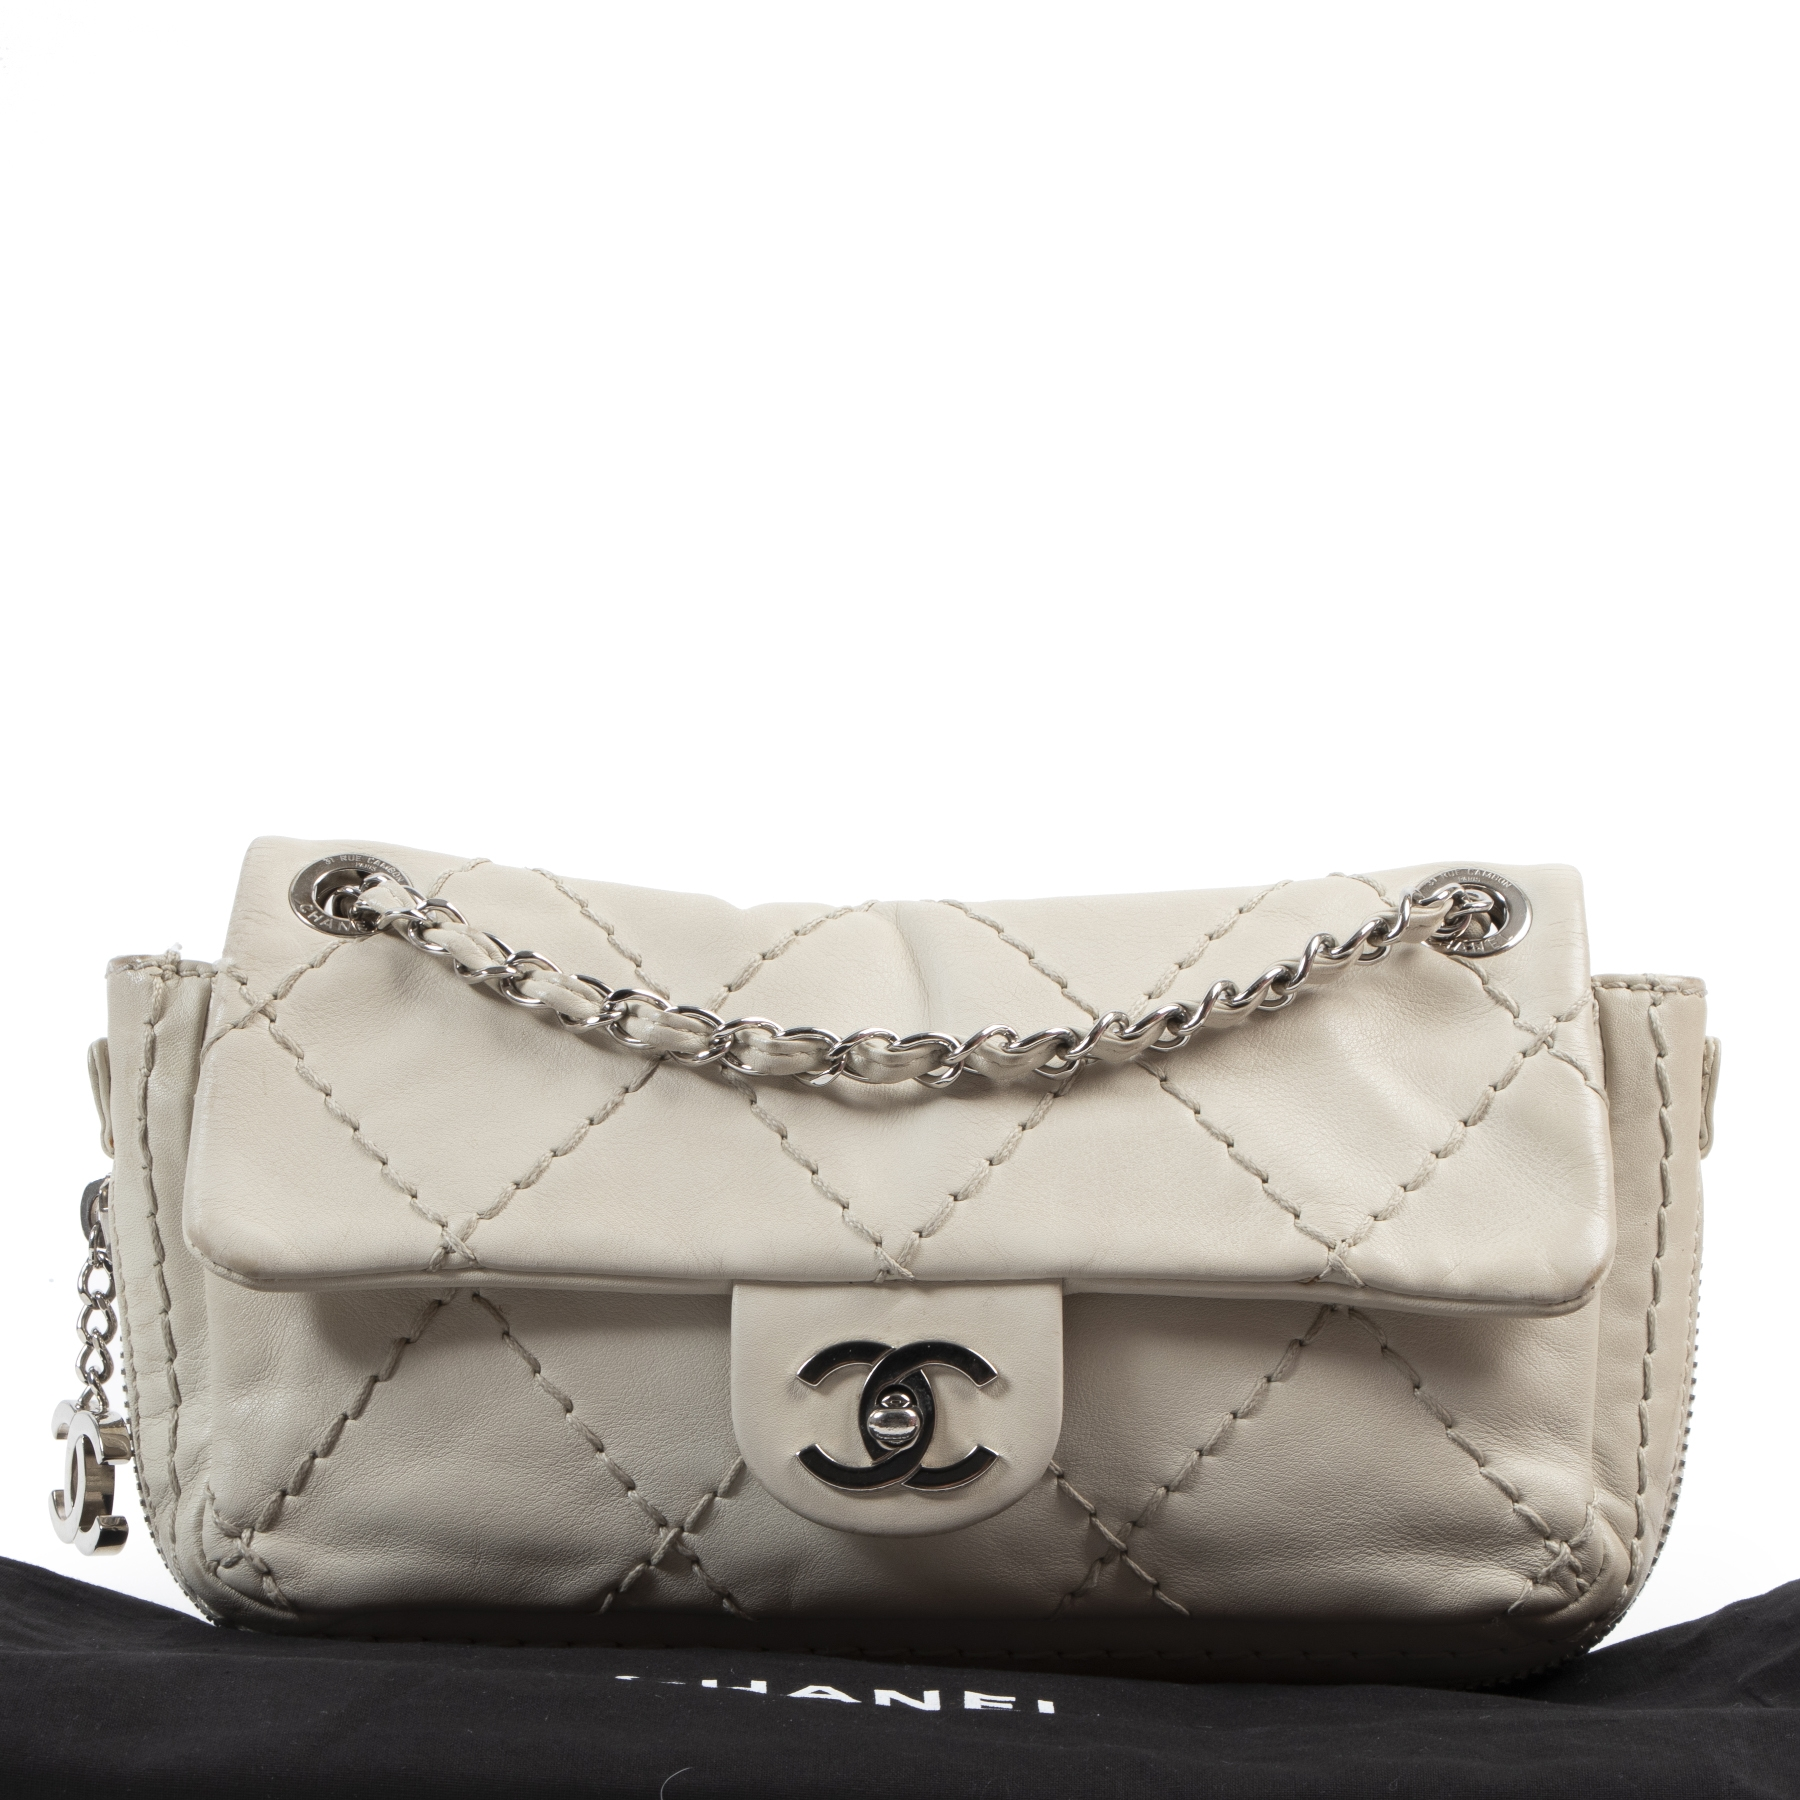 skip the waitinglist shop safe online Chanel Ivory Quilted Leather Flap Bag PHW